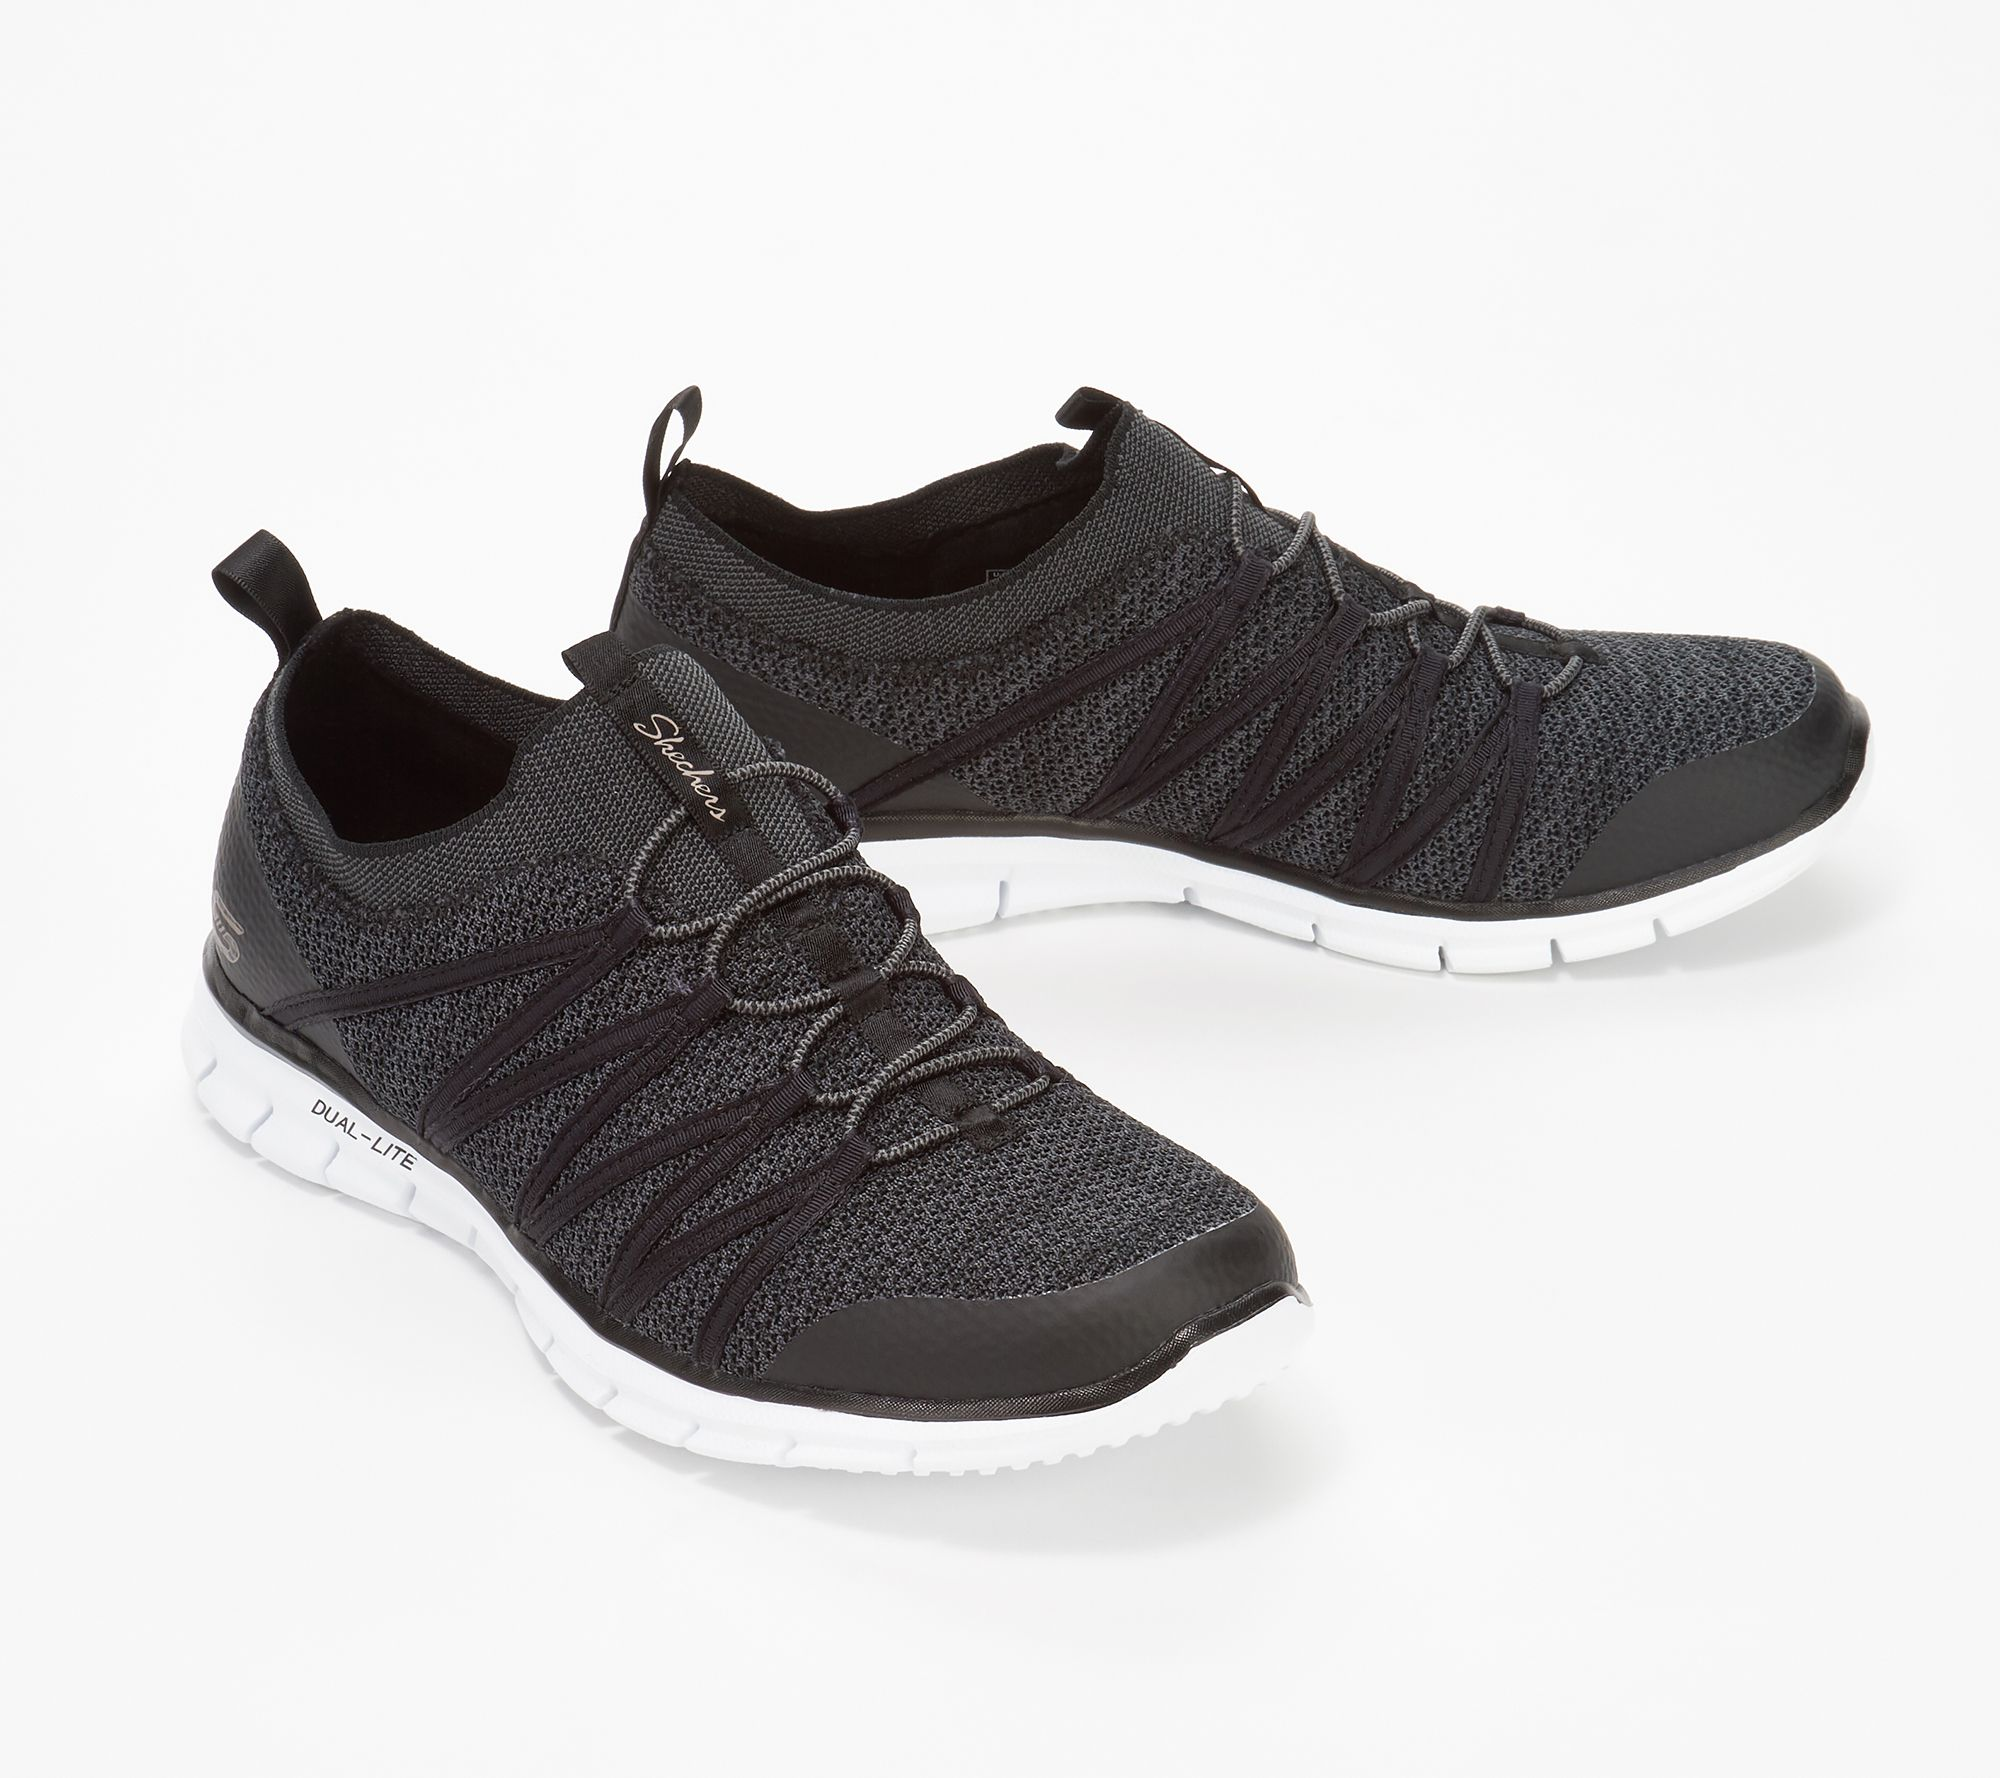 brede selectie ooit populair loopschoenen Skechers Stretch-Knit Bungee Slip-On Sneakers - Glider Tuneful — QVC.com